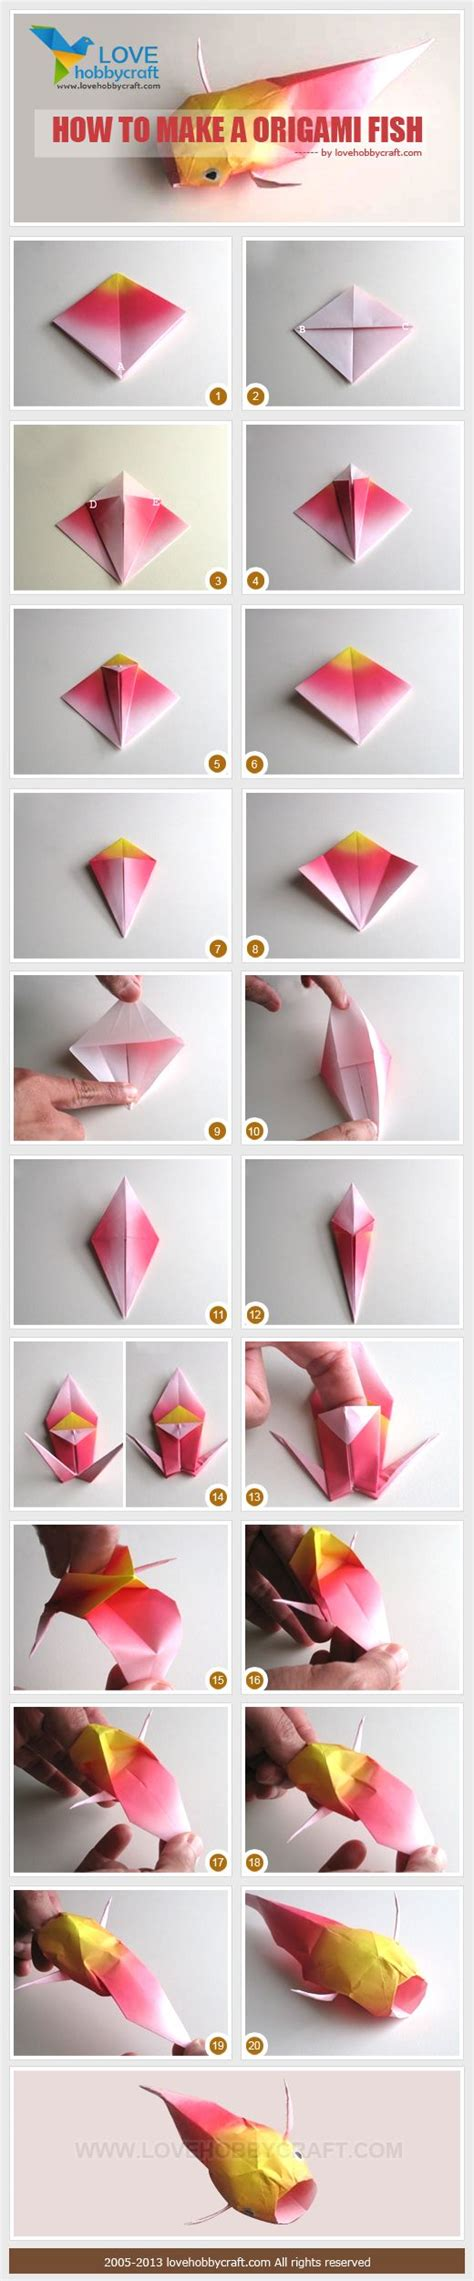 new year koi fish origami diy origami fish craft ideas